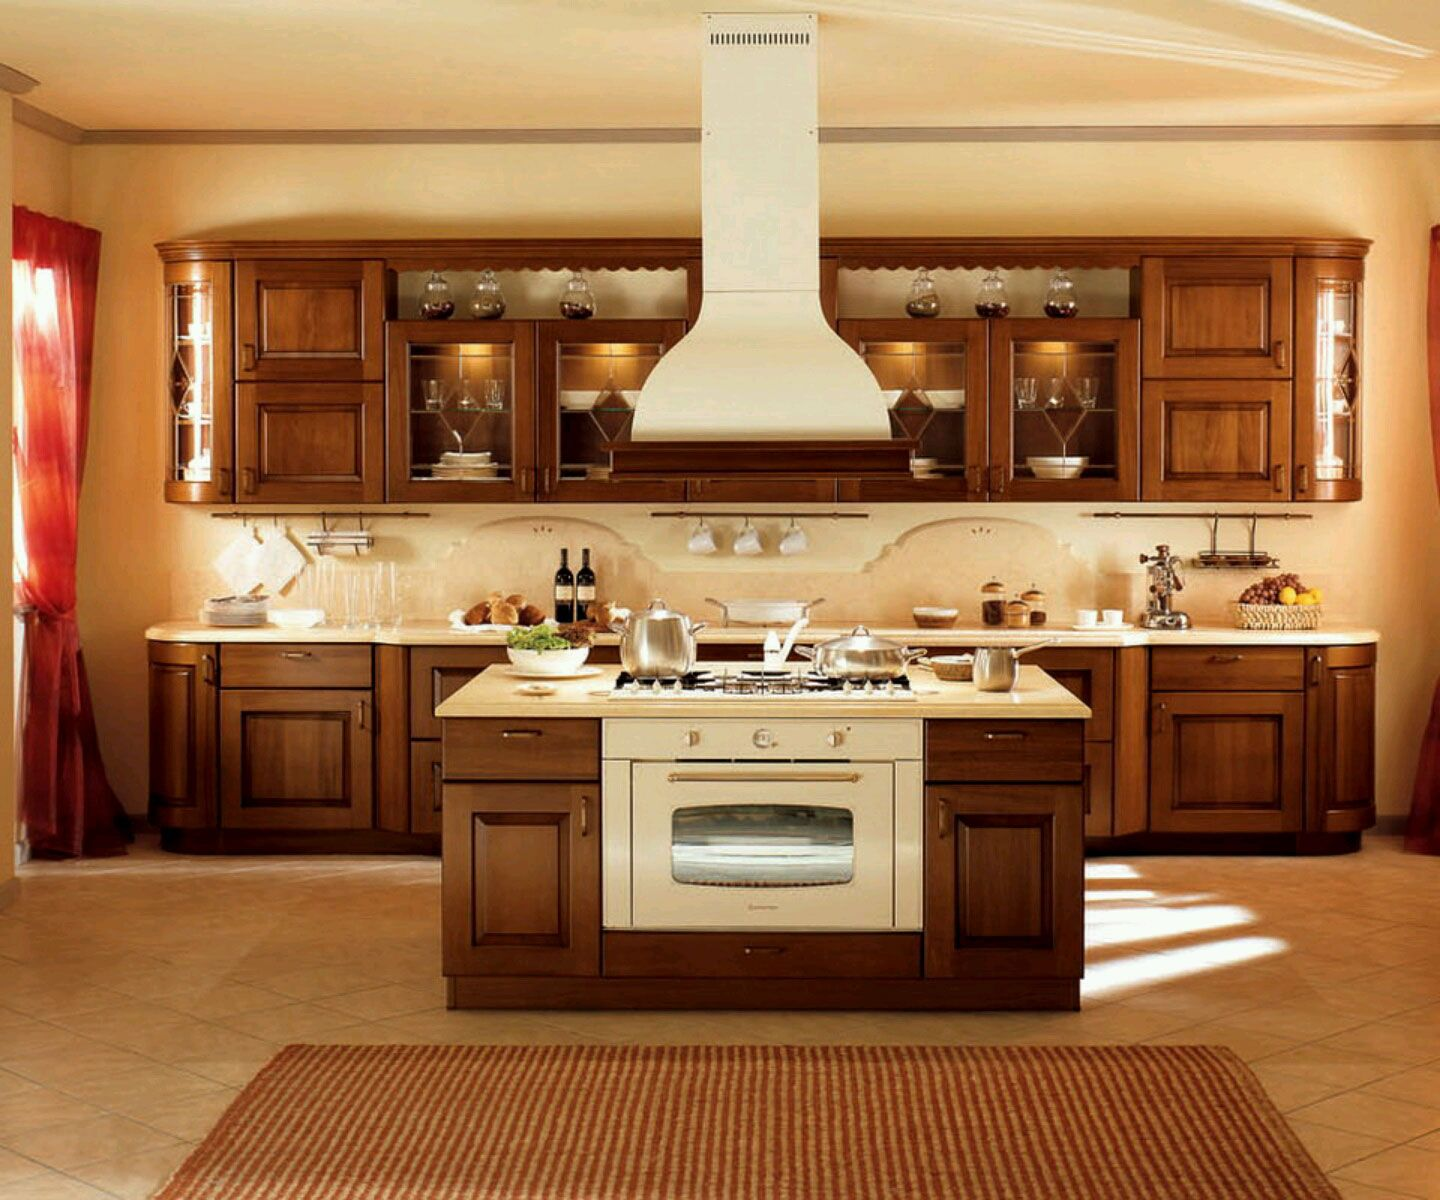 Lovely Compact Island With Cooktop And Oven Ideas With Rectangular Rug Also Trendy  Wood Kitchen Cabinet Design Nice Ideas